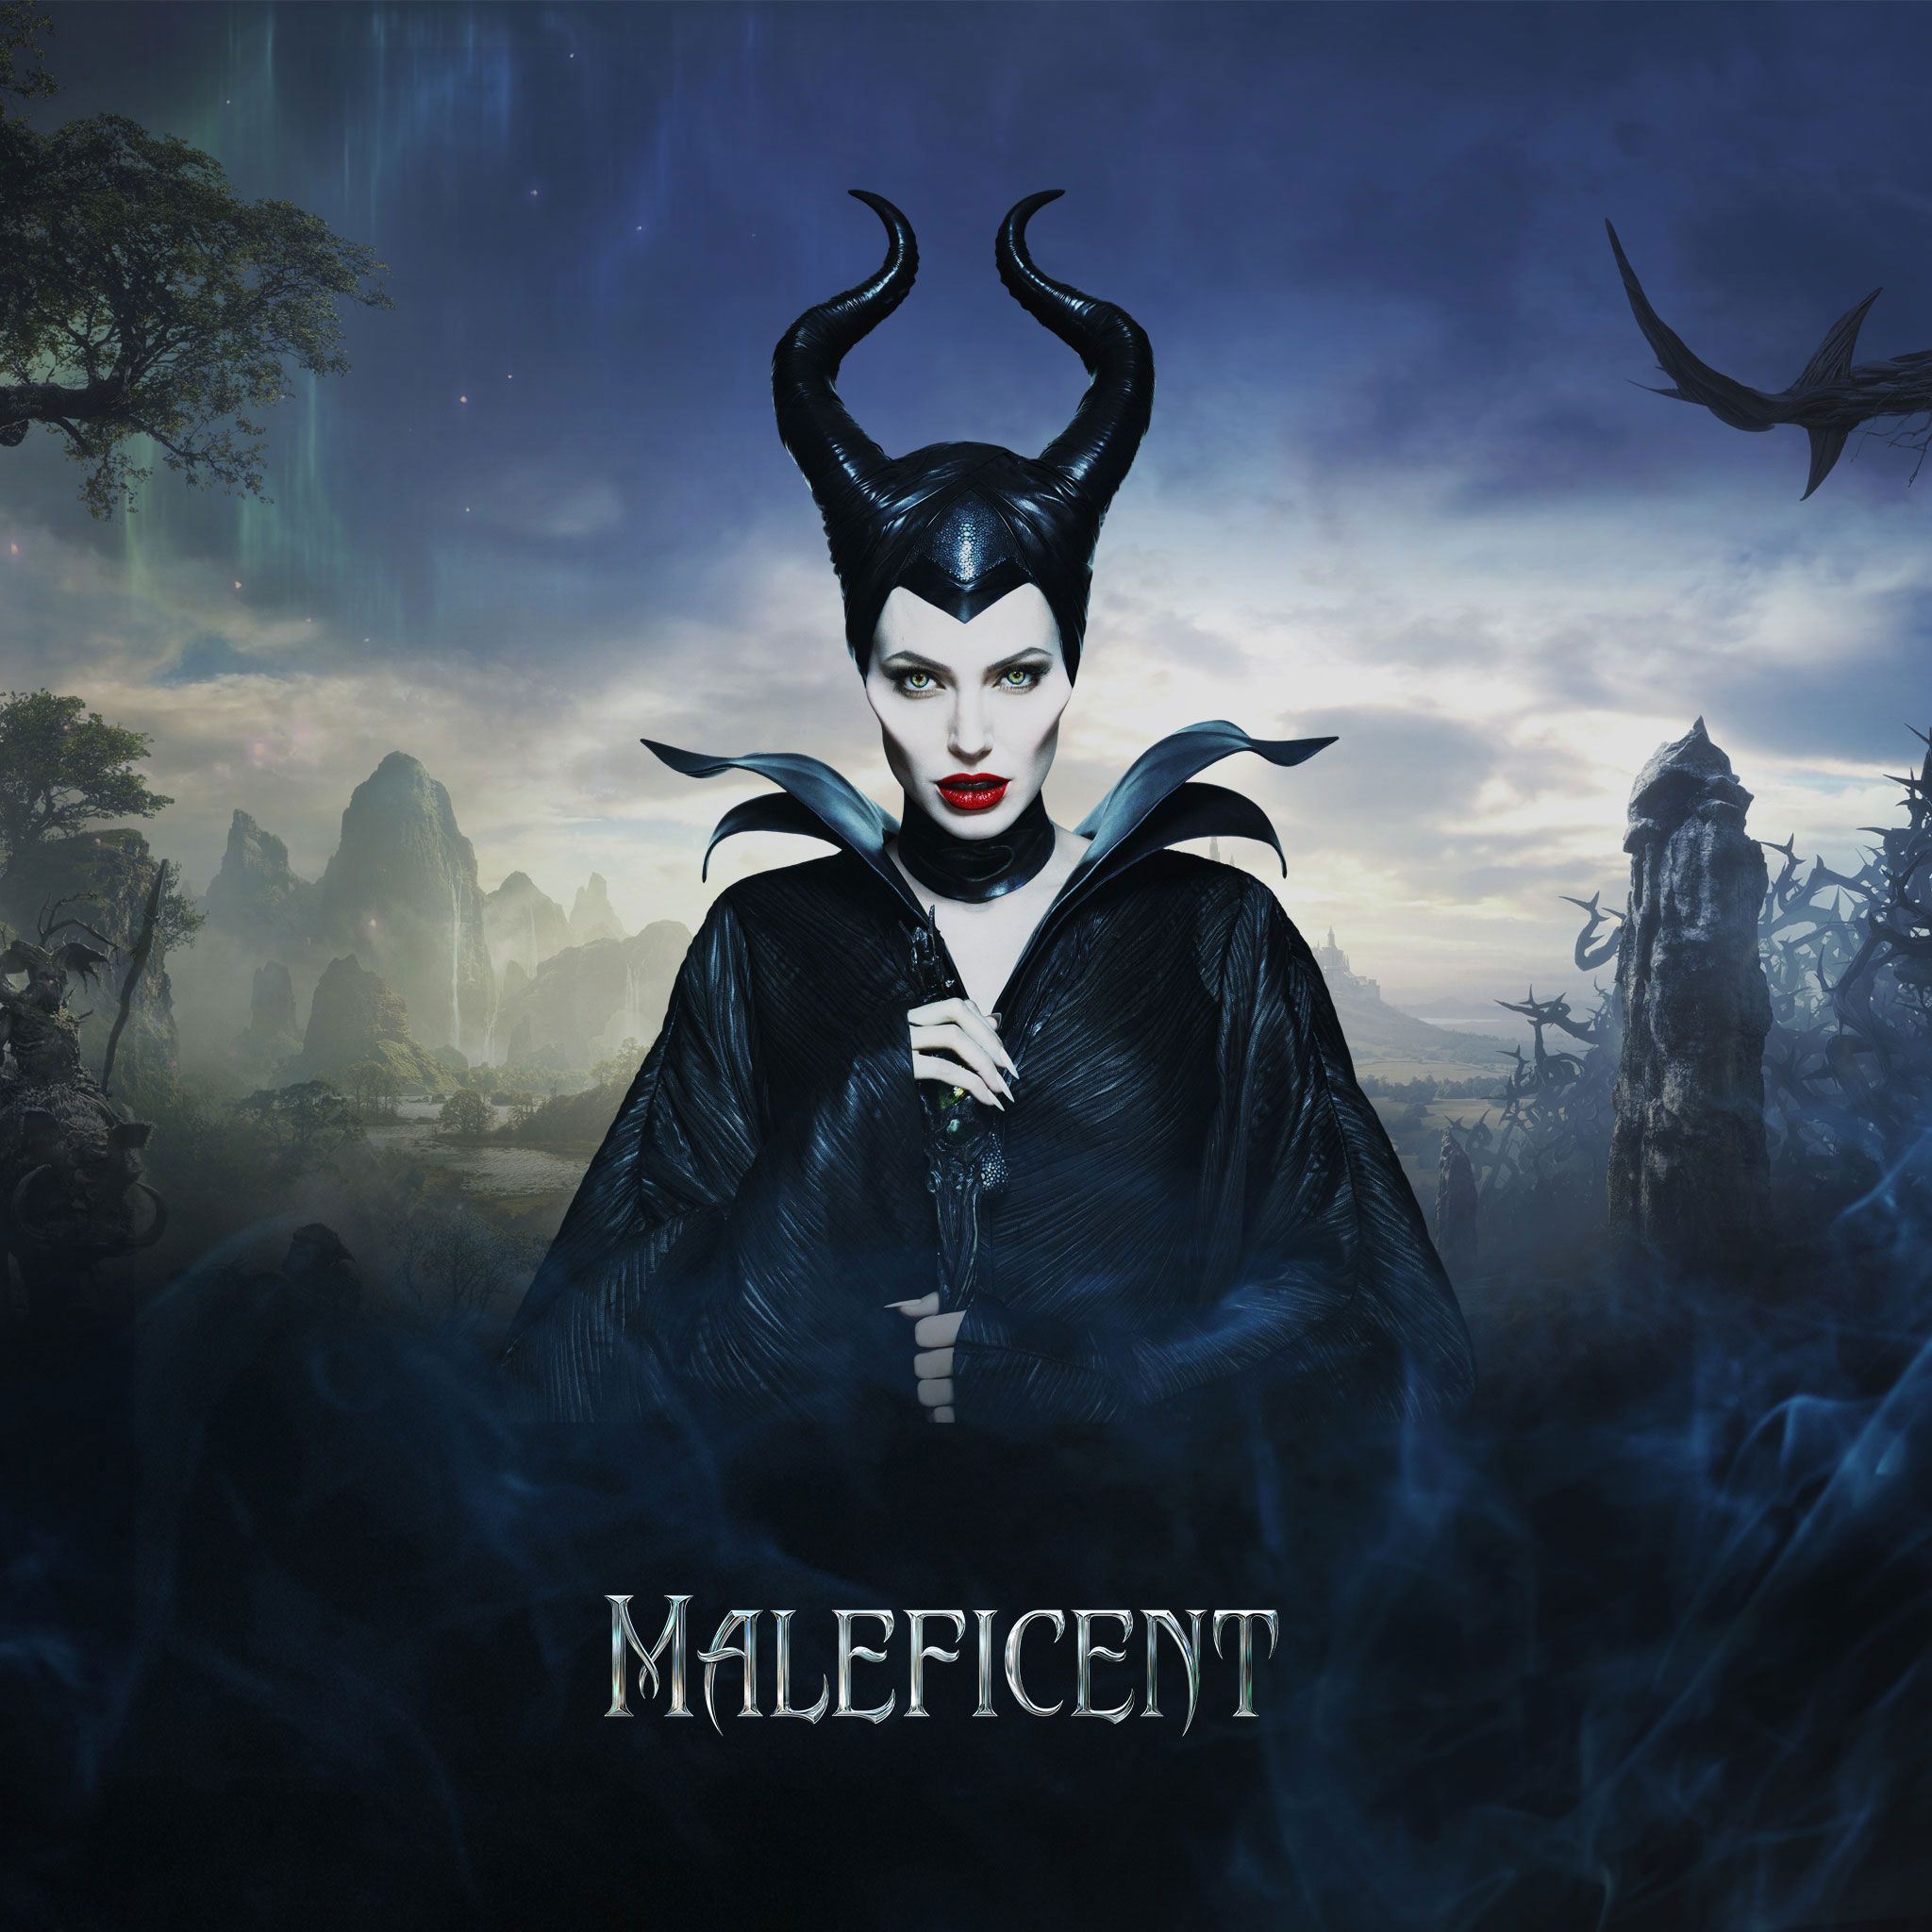 maleficent 2014 diaval maleficent ipad wallpaper Maleficent